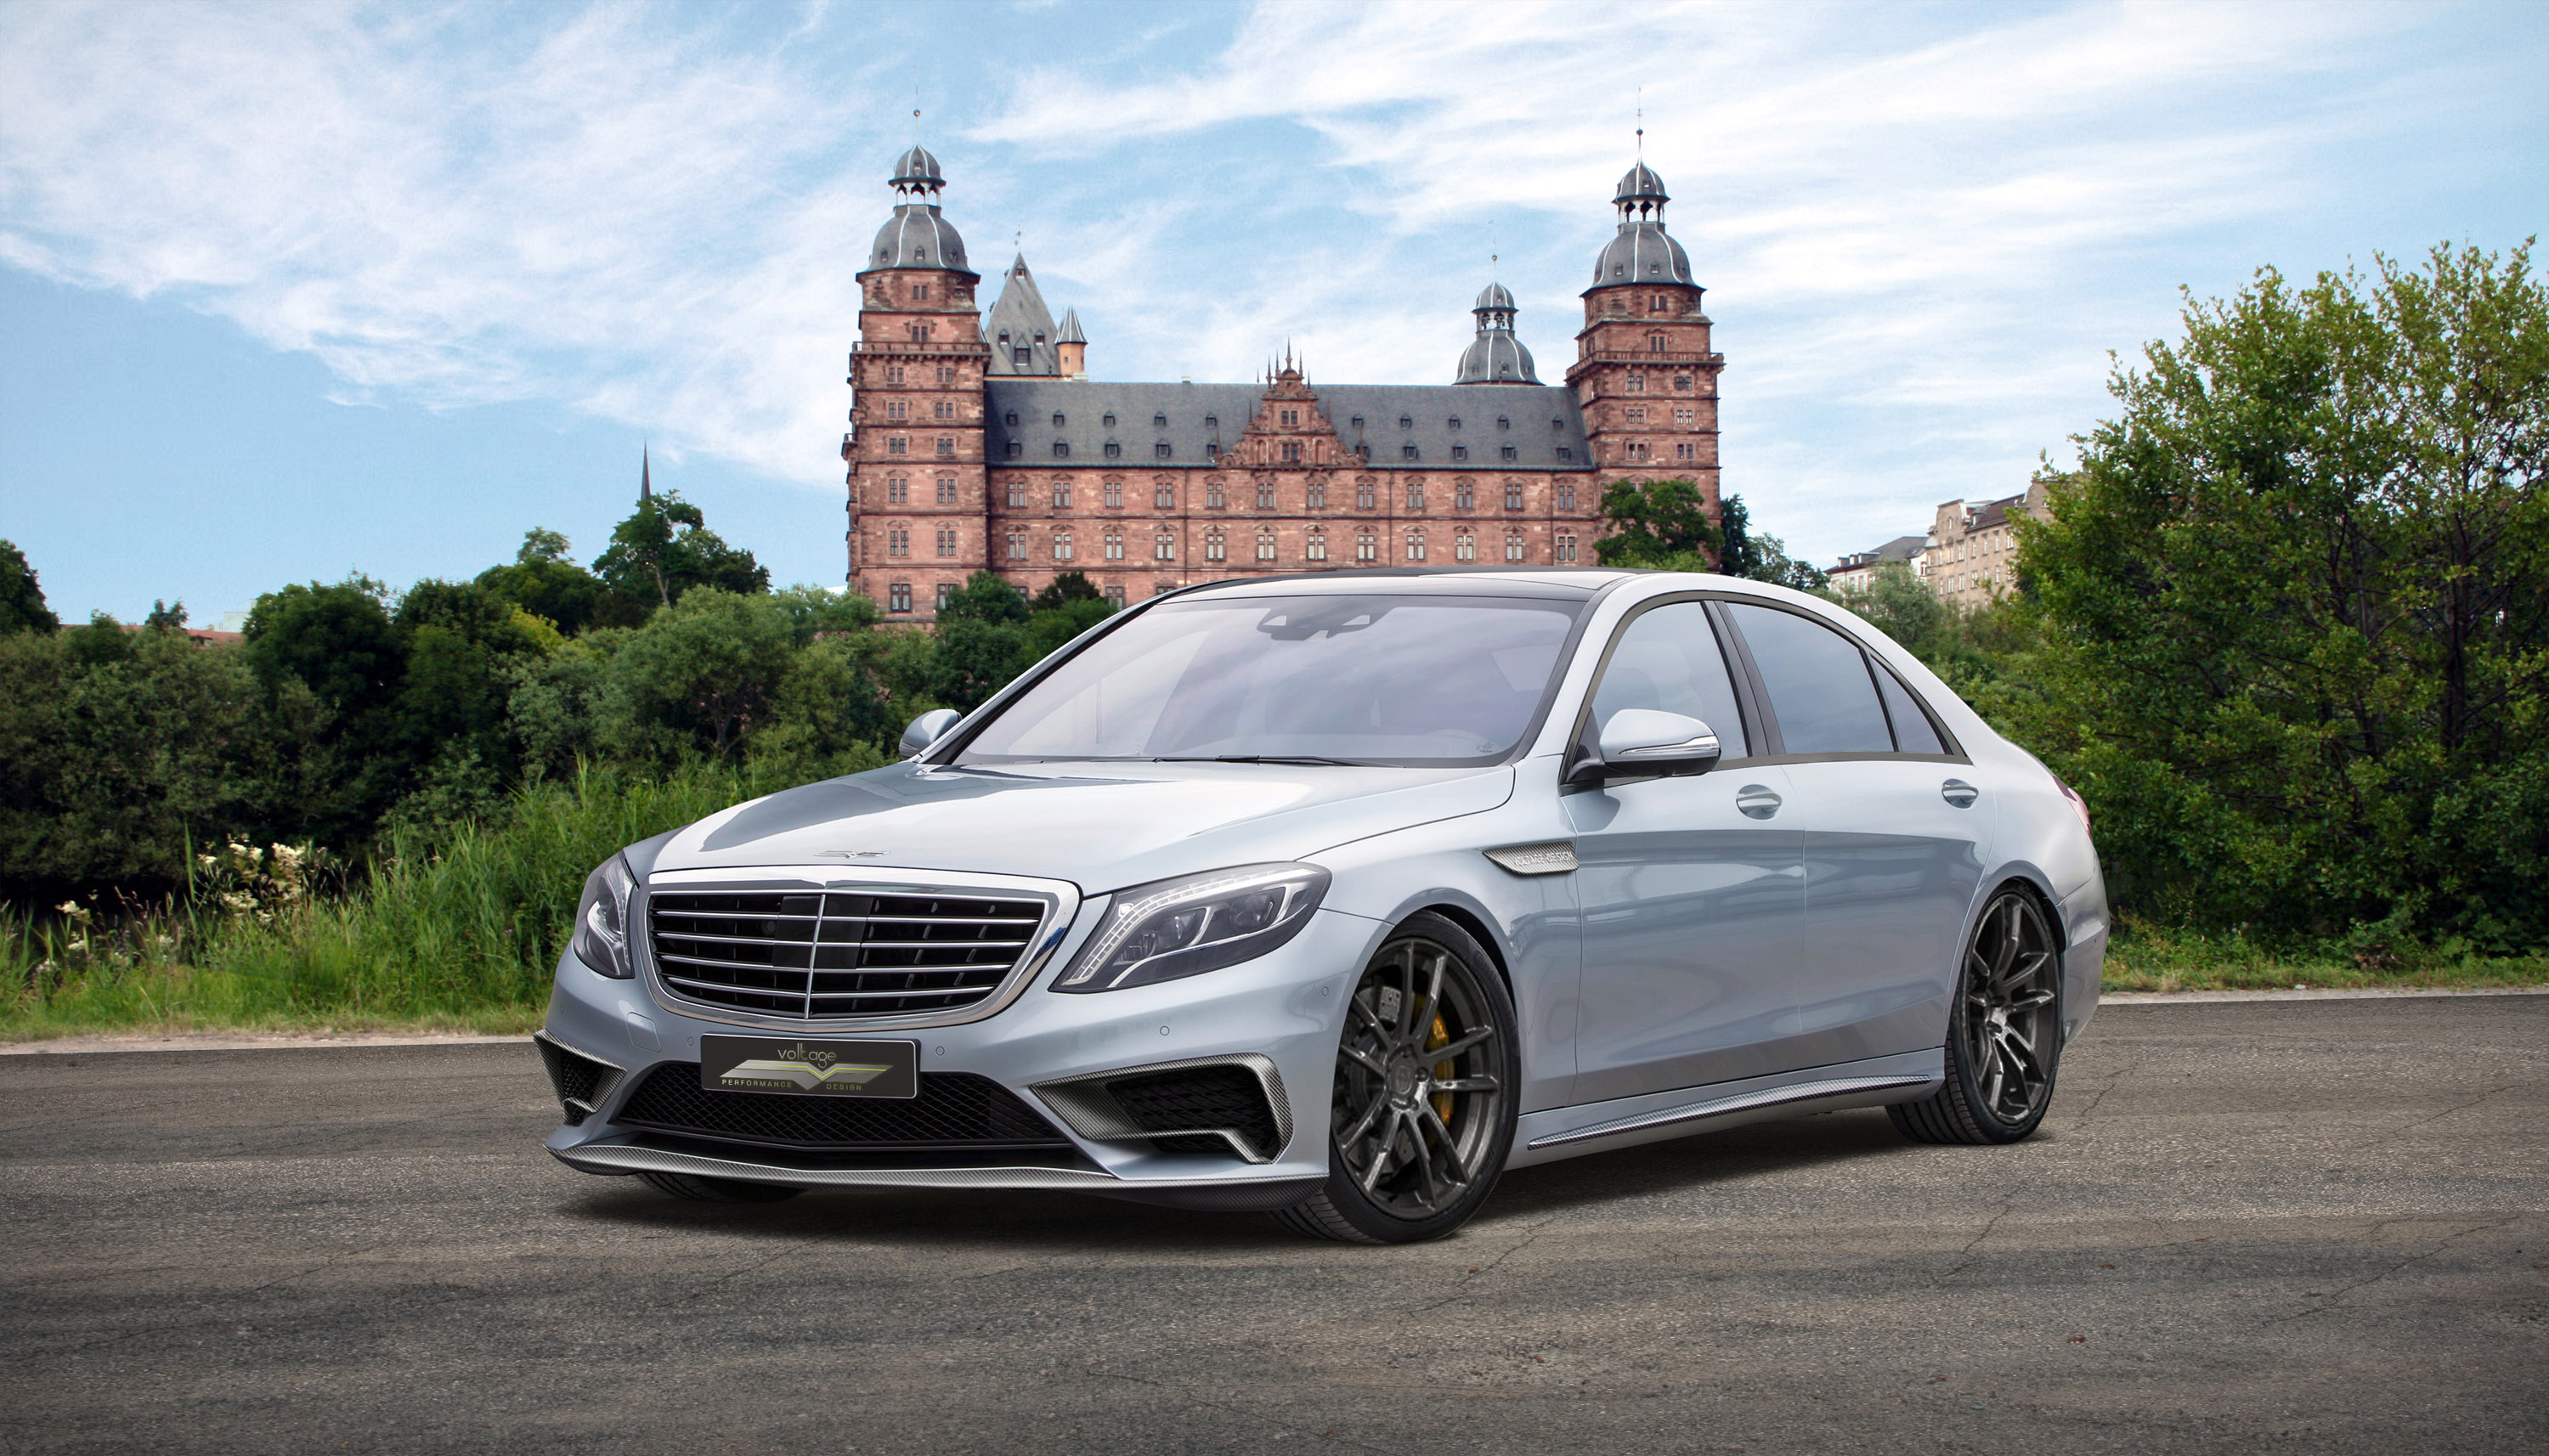 Mercedes benz s65 luxury sedan updated by voltage design for Mercedes benz s65 coupe